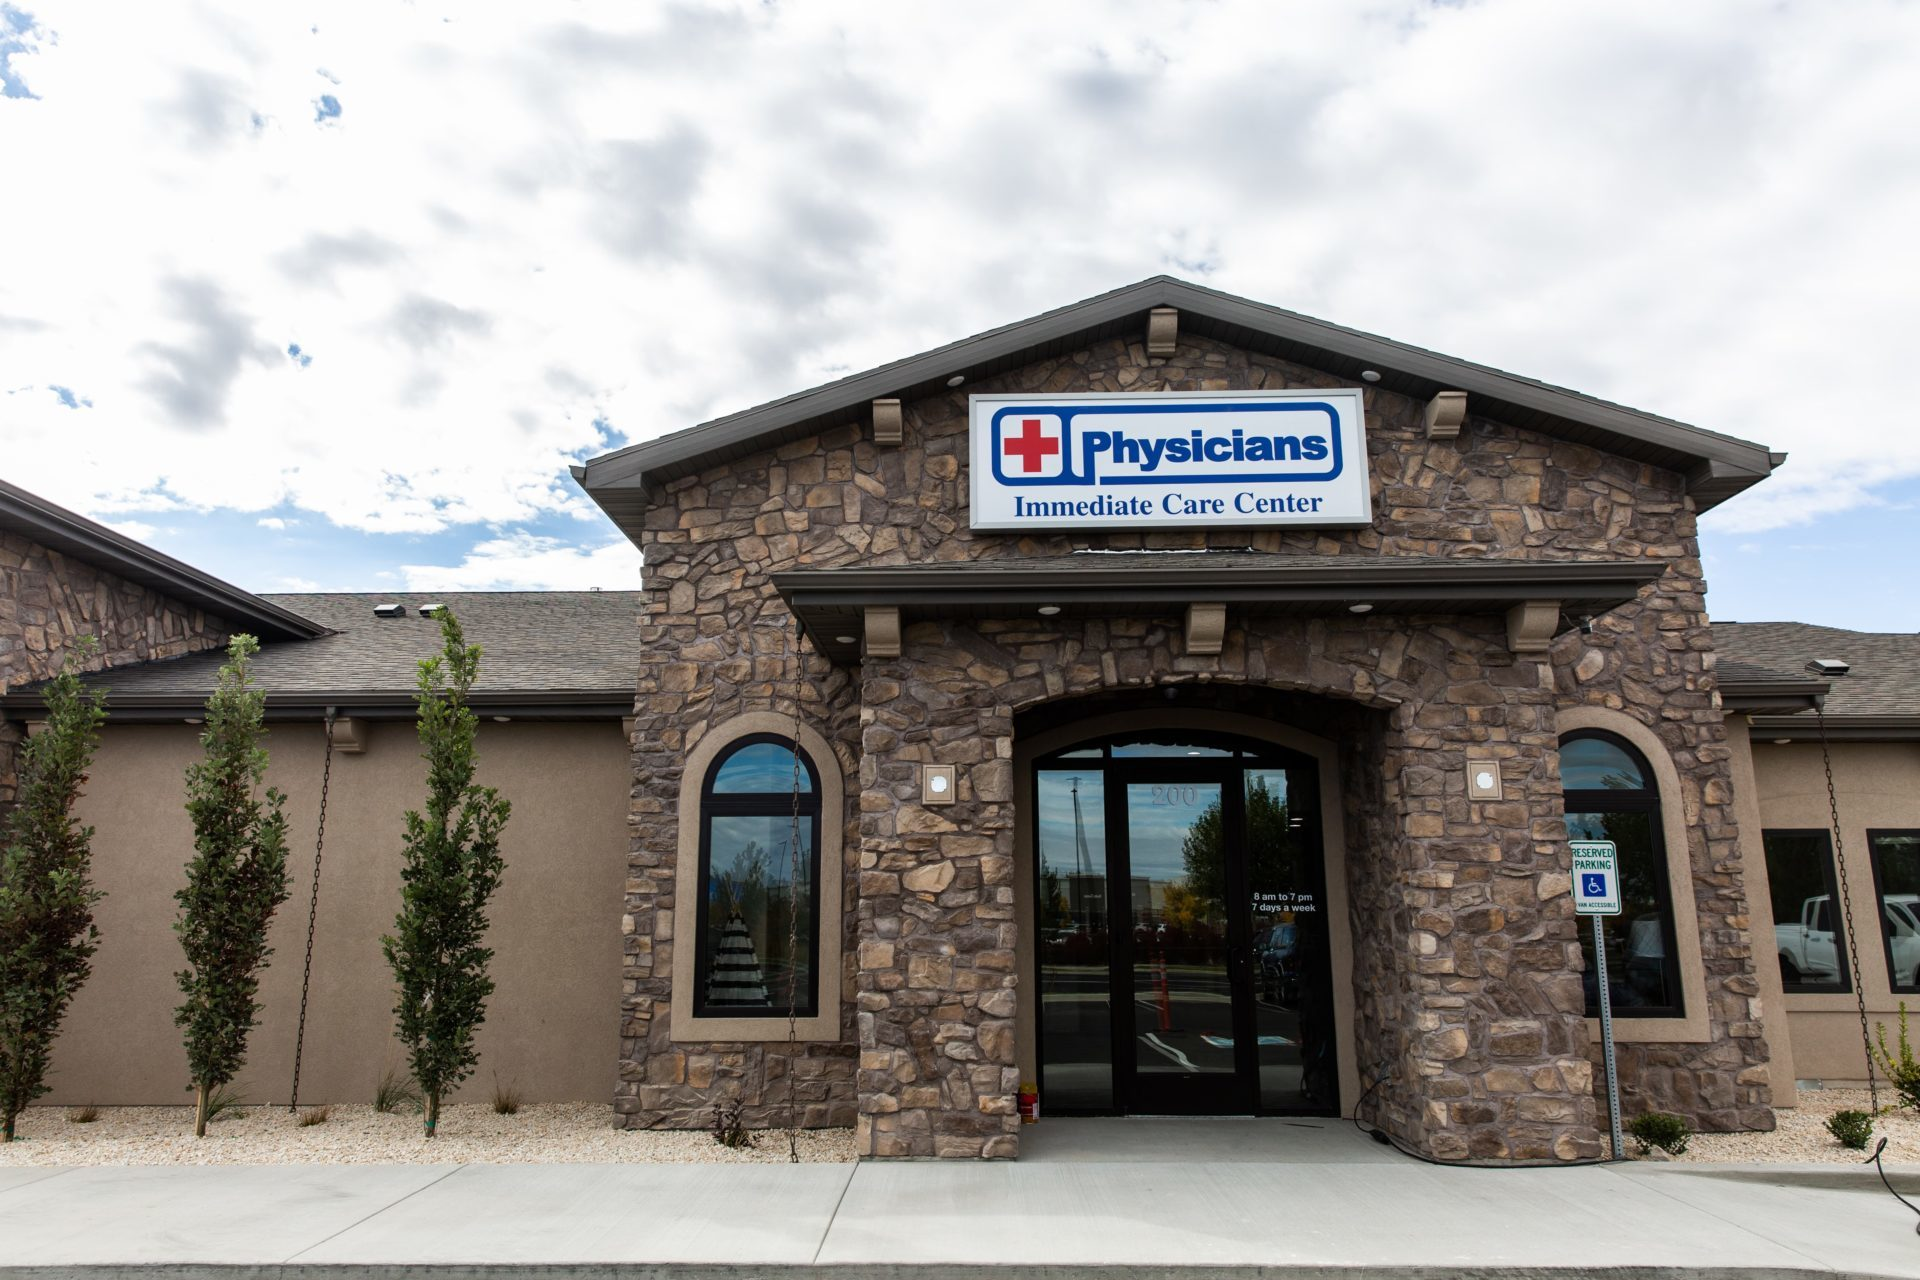 Physicians Immediate Care Center Cheney Drive Building